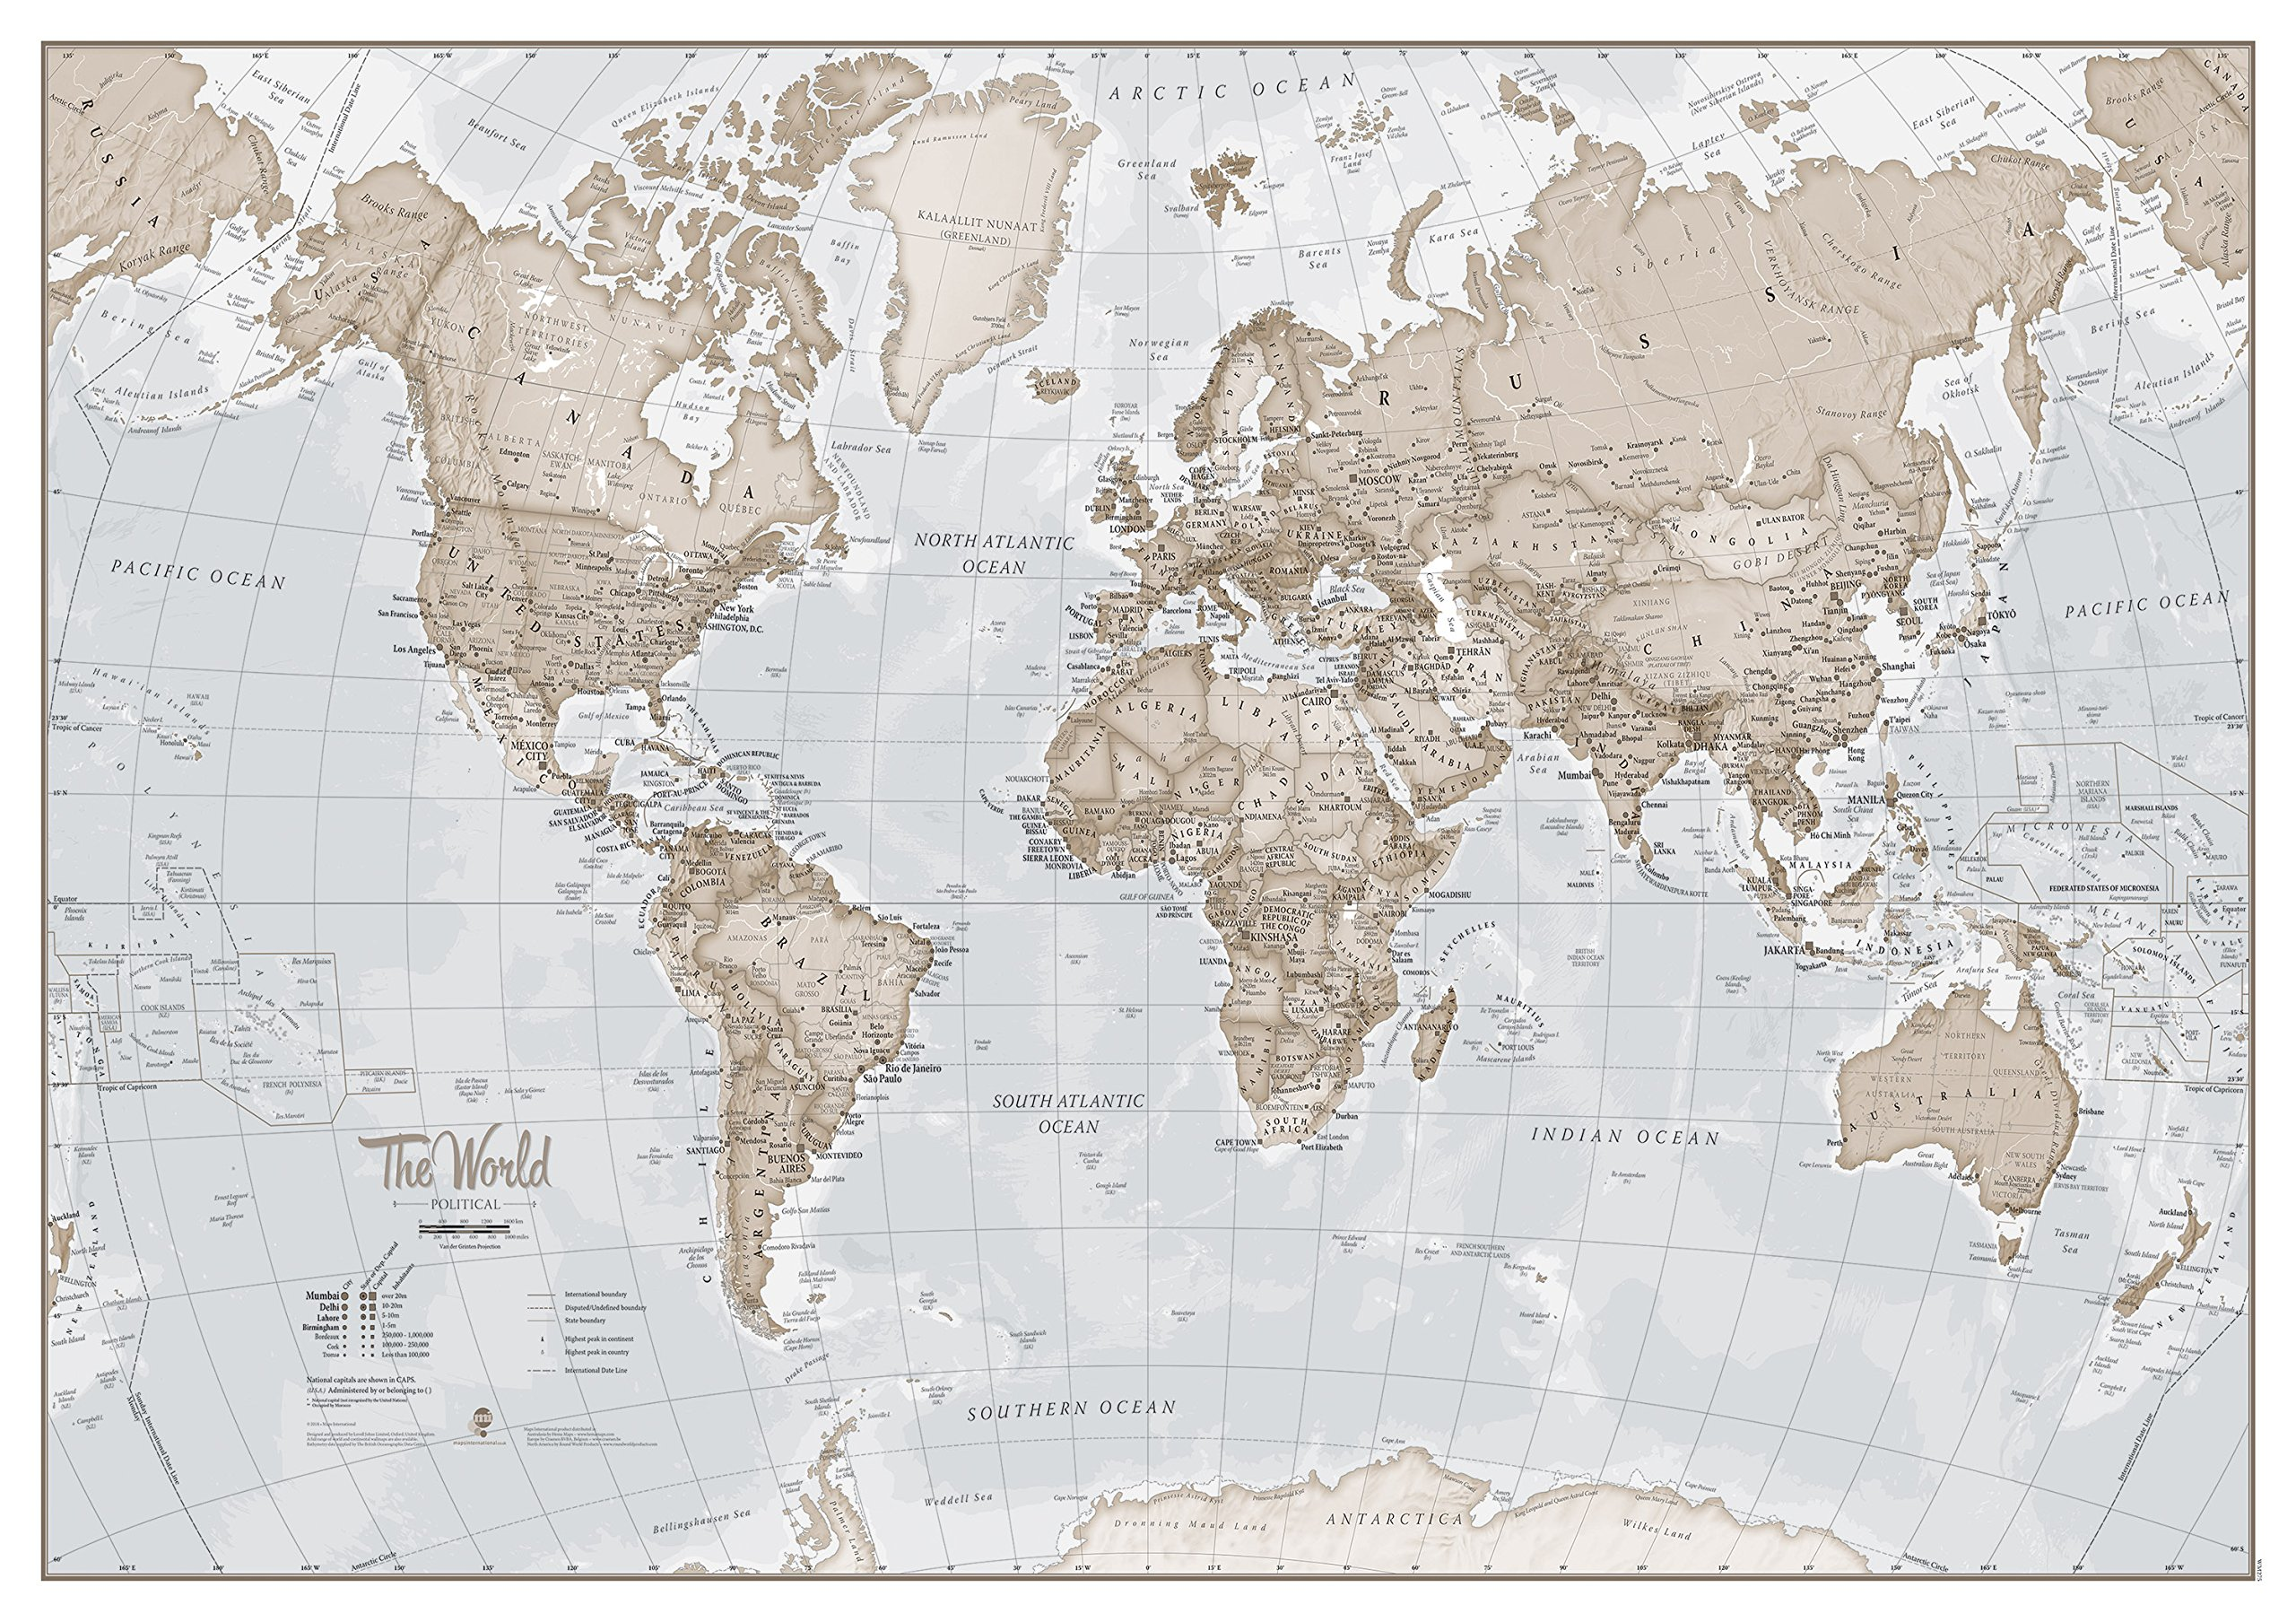 Large Map Of The World – Silk Art Print World Map – Neutral Tones - 33 x 23 by MapsInternational